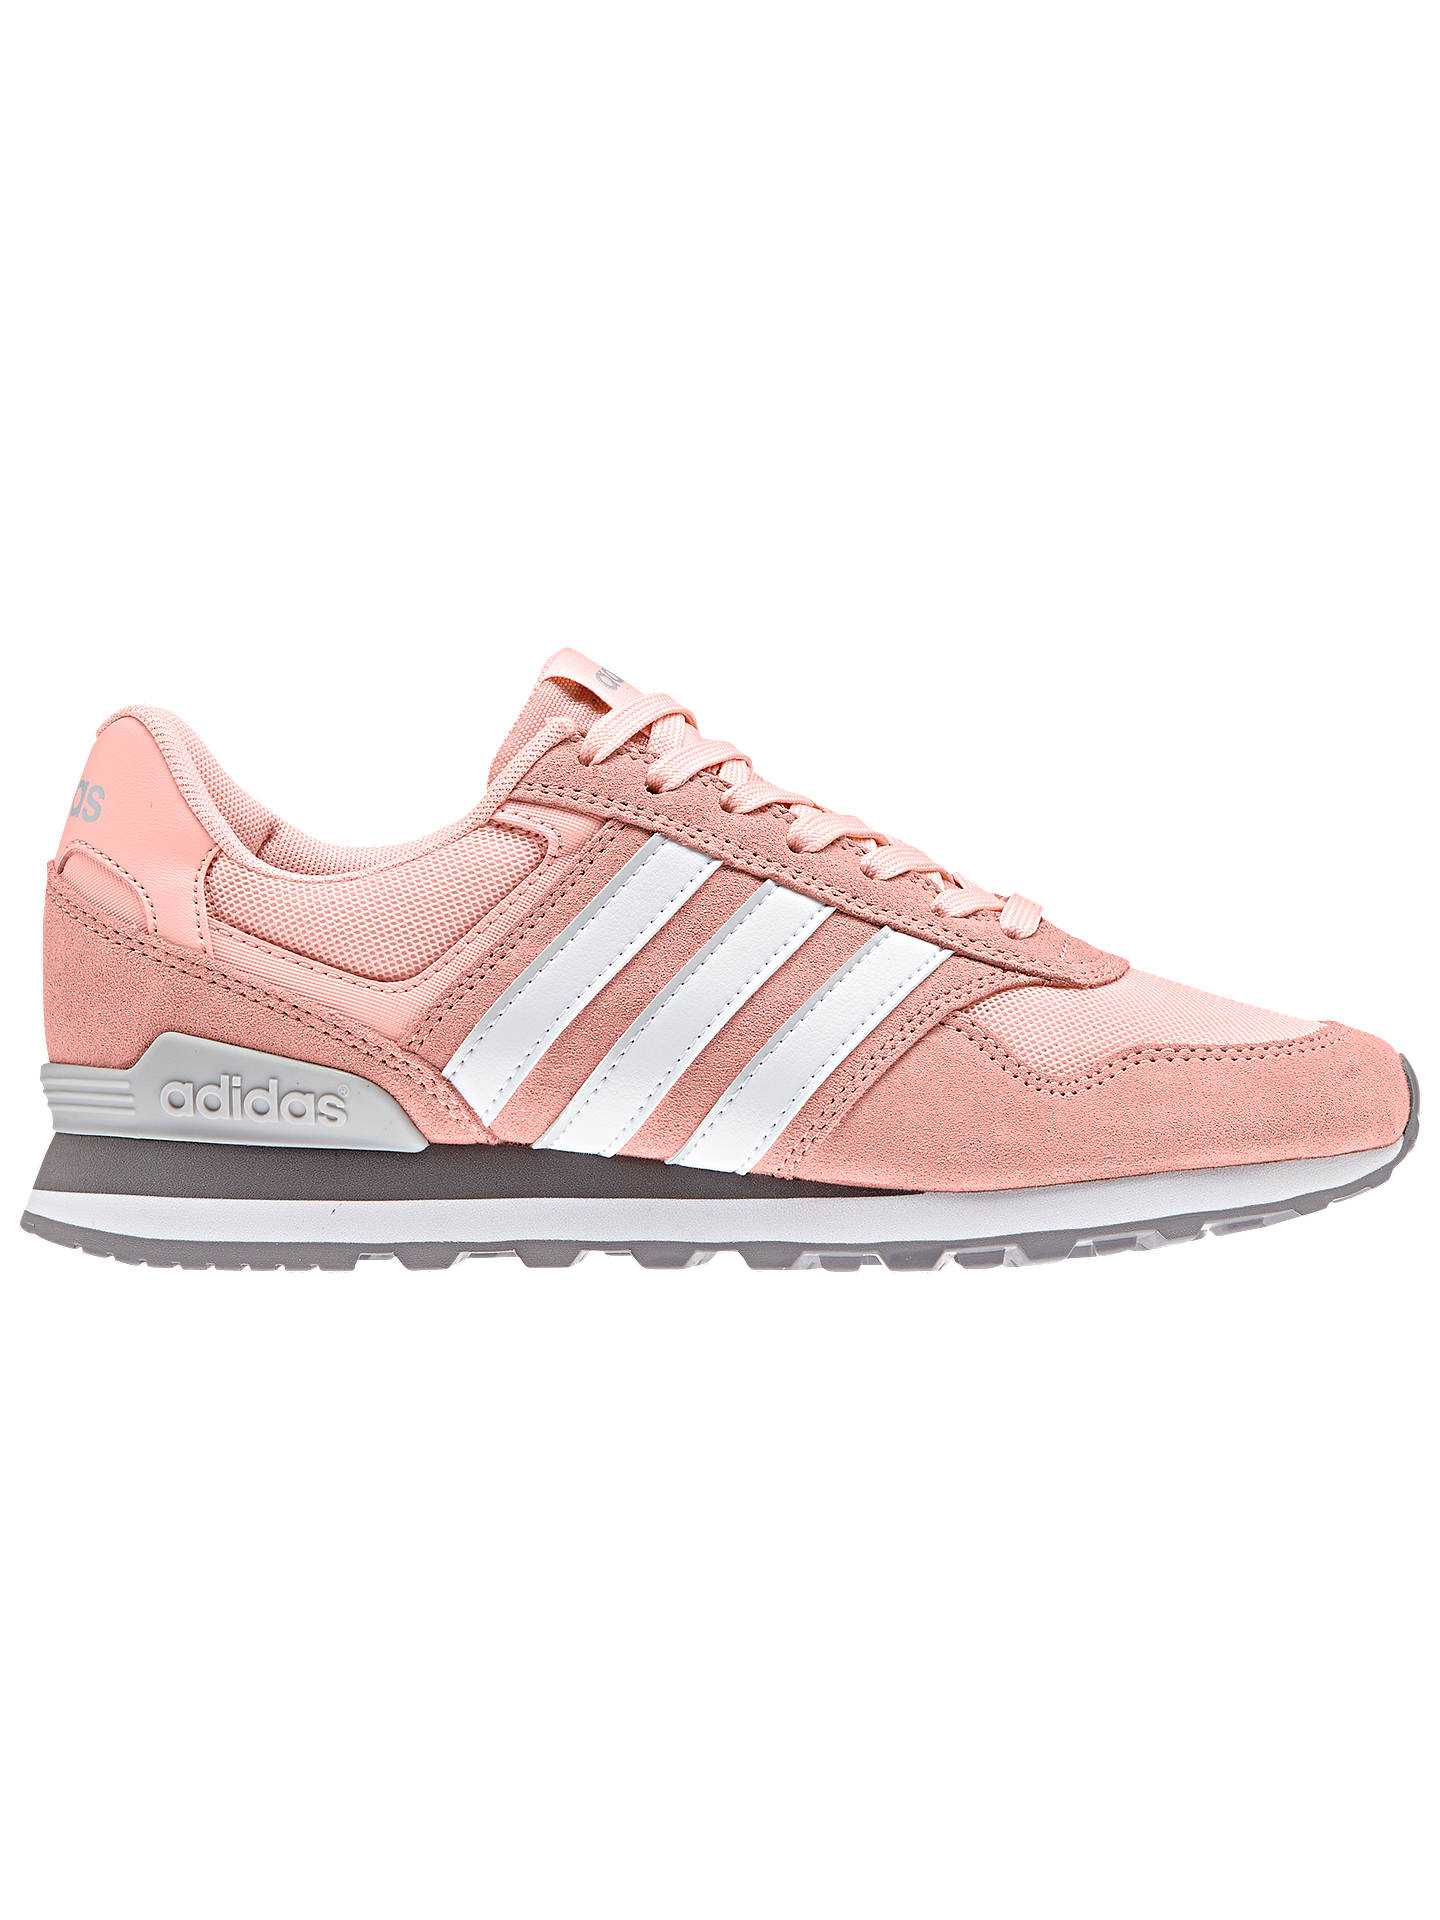 meet 3d5fa 53e29 Buy Adidas Neo 10K Casual Women s Trainers, Haze Coral, 5 Online at  johnlewis.